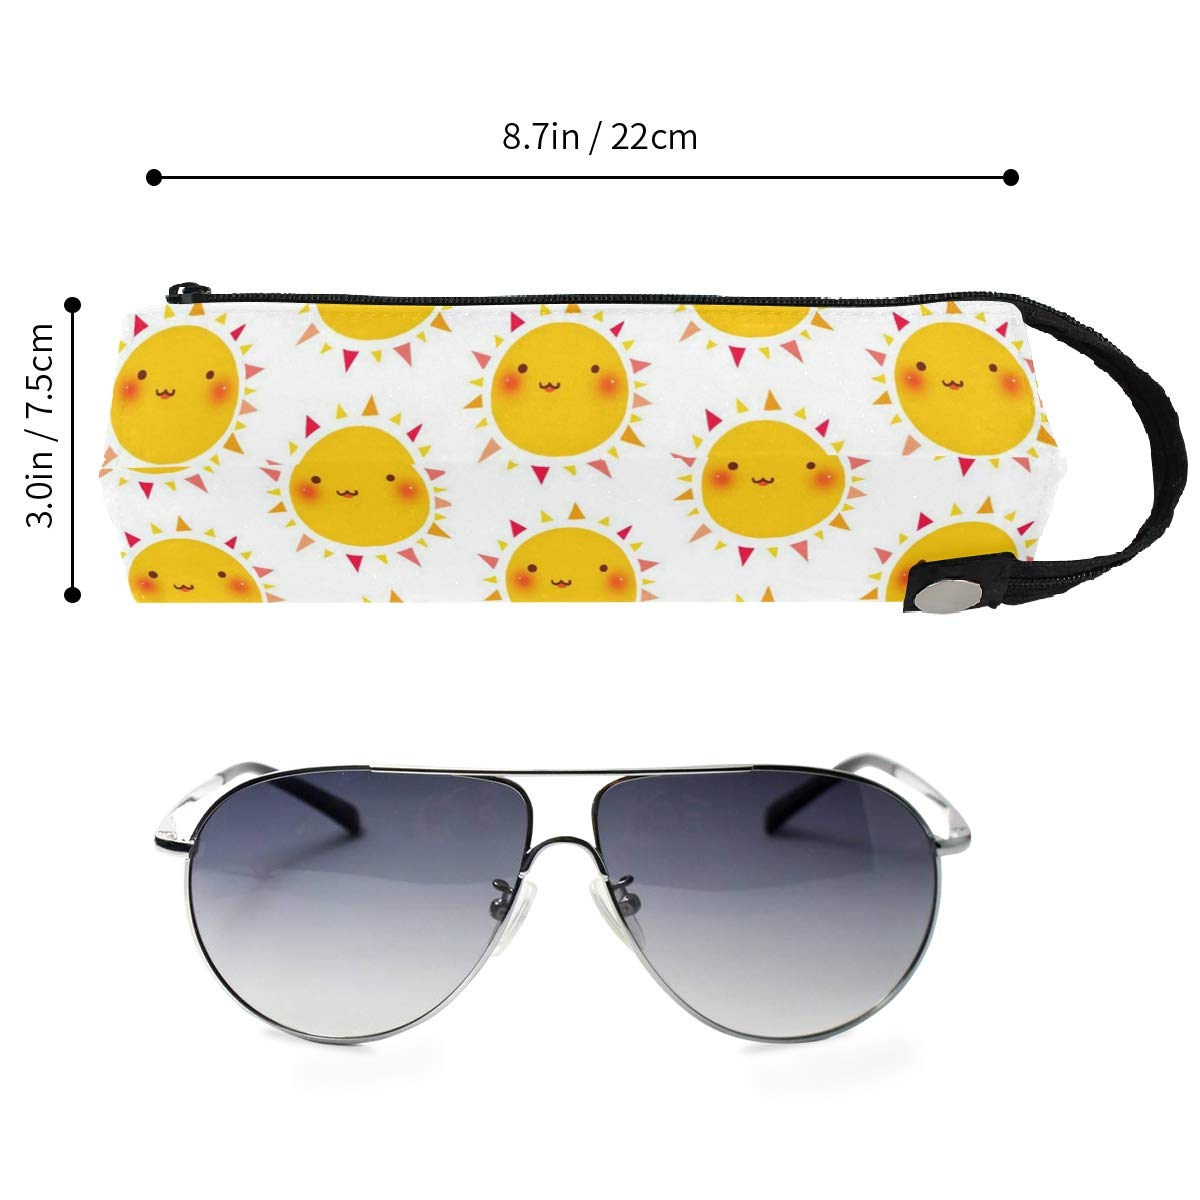 Elephant Flower Mandala Glasses Case Portable Soft Sunglasses Pen Bag Protective Pouch